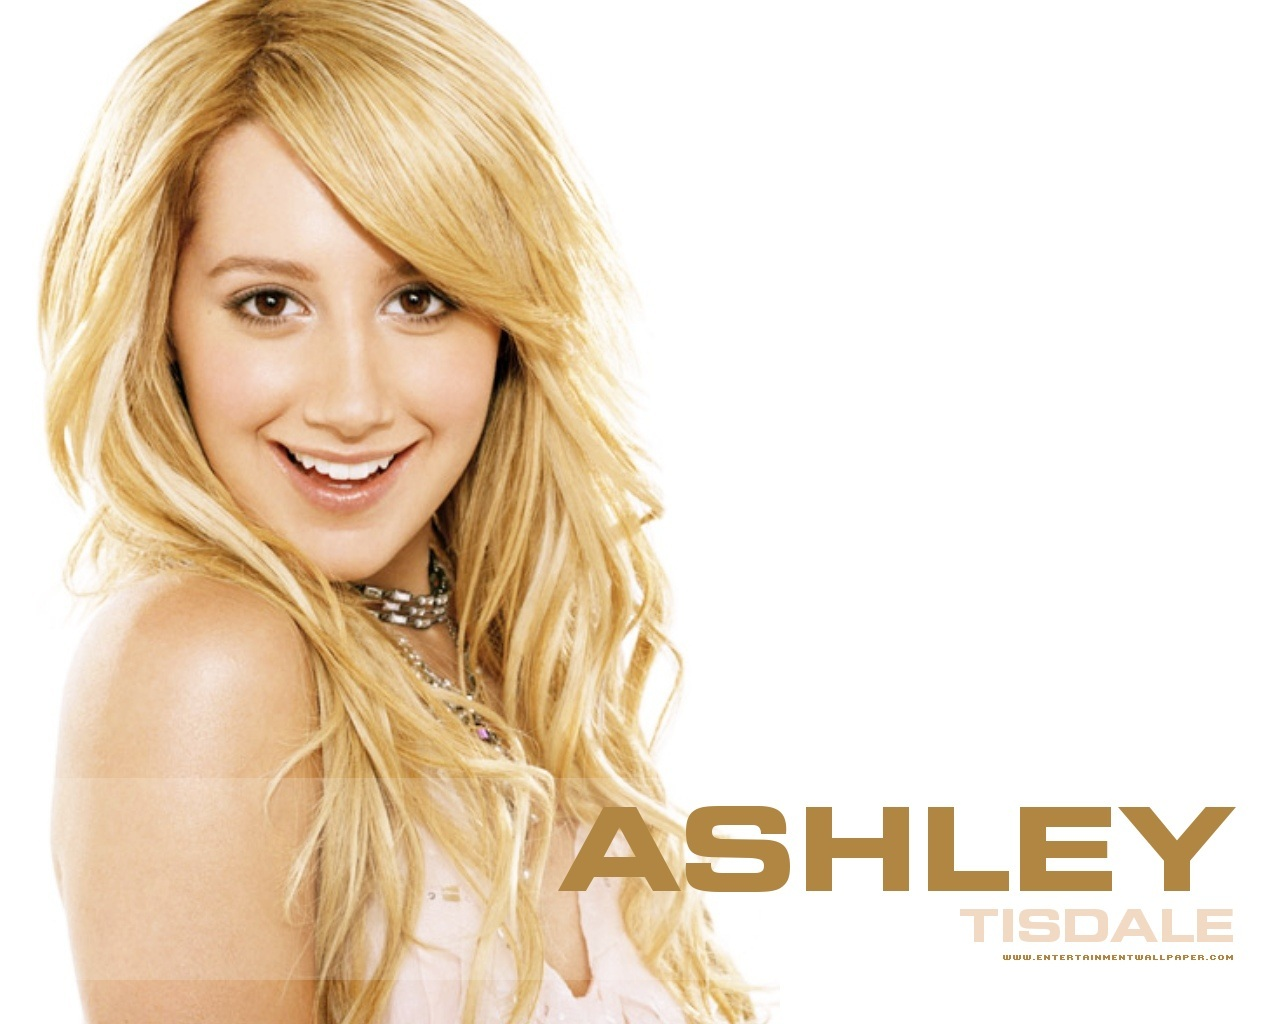 http://1.bp.blogspot.com/-UCtItFw6eGc/Tw-z1Yll-sI/AAAAAAAACXo/du973WbwRB4/s1600/Ashley-Tisdale-photos.jpg